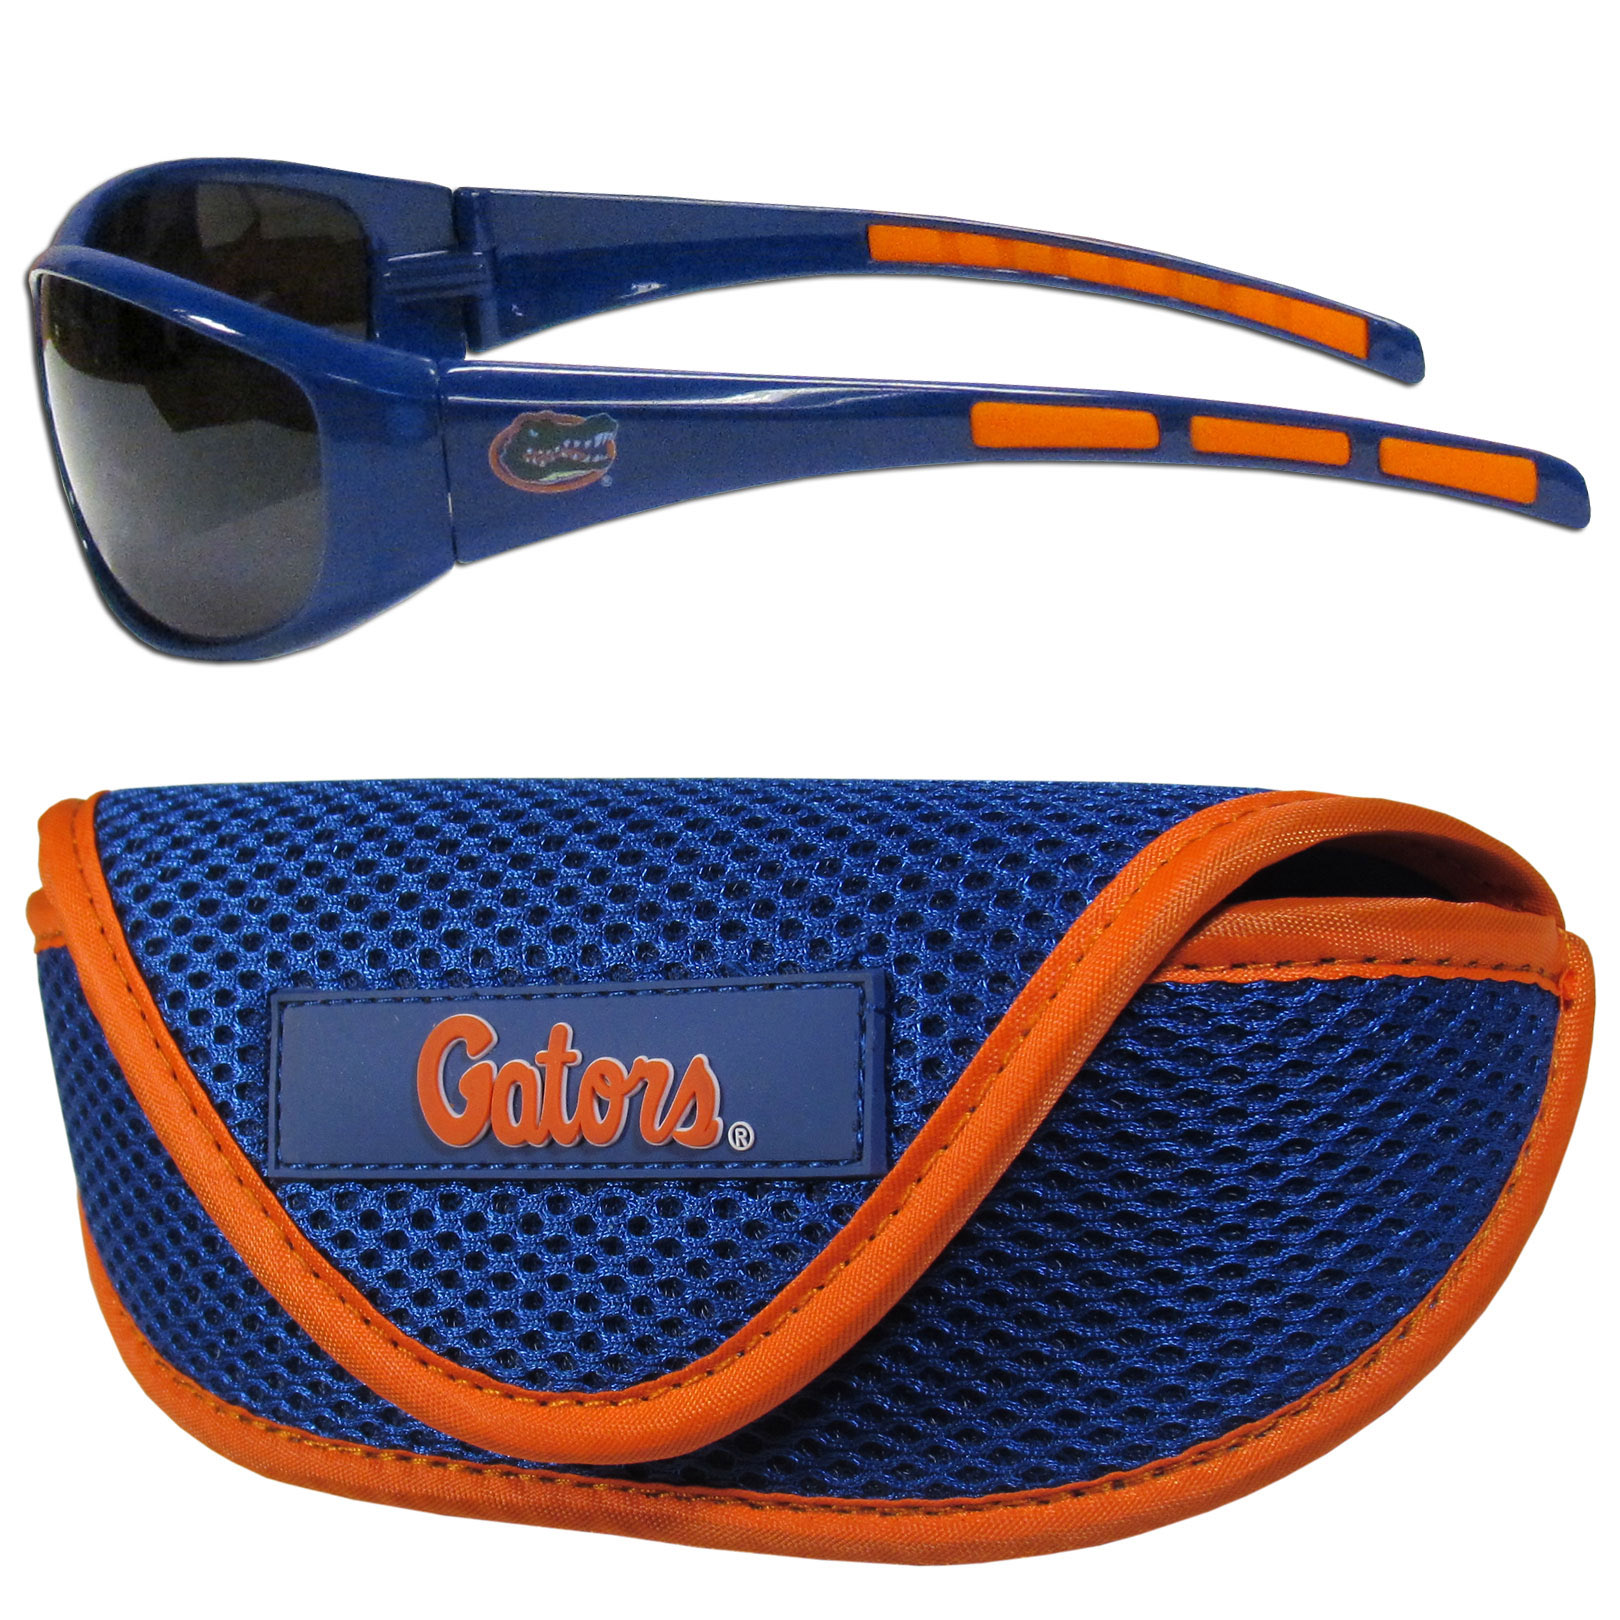 Florida Gators Wrap Sunglass and Case Set - This great set includes a high quality pair of Florida Gators wrap sunglasses and soft sport carrying case.